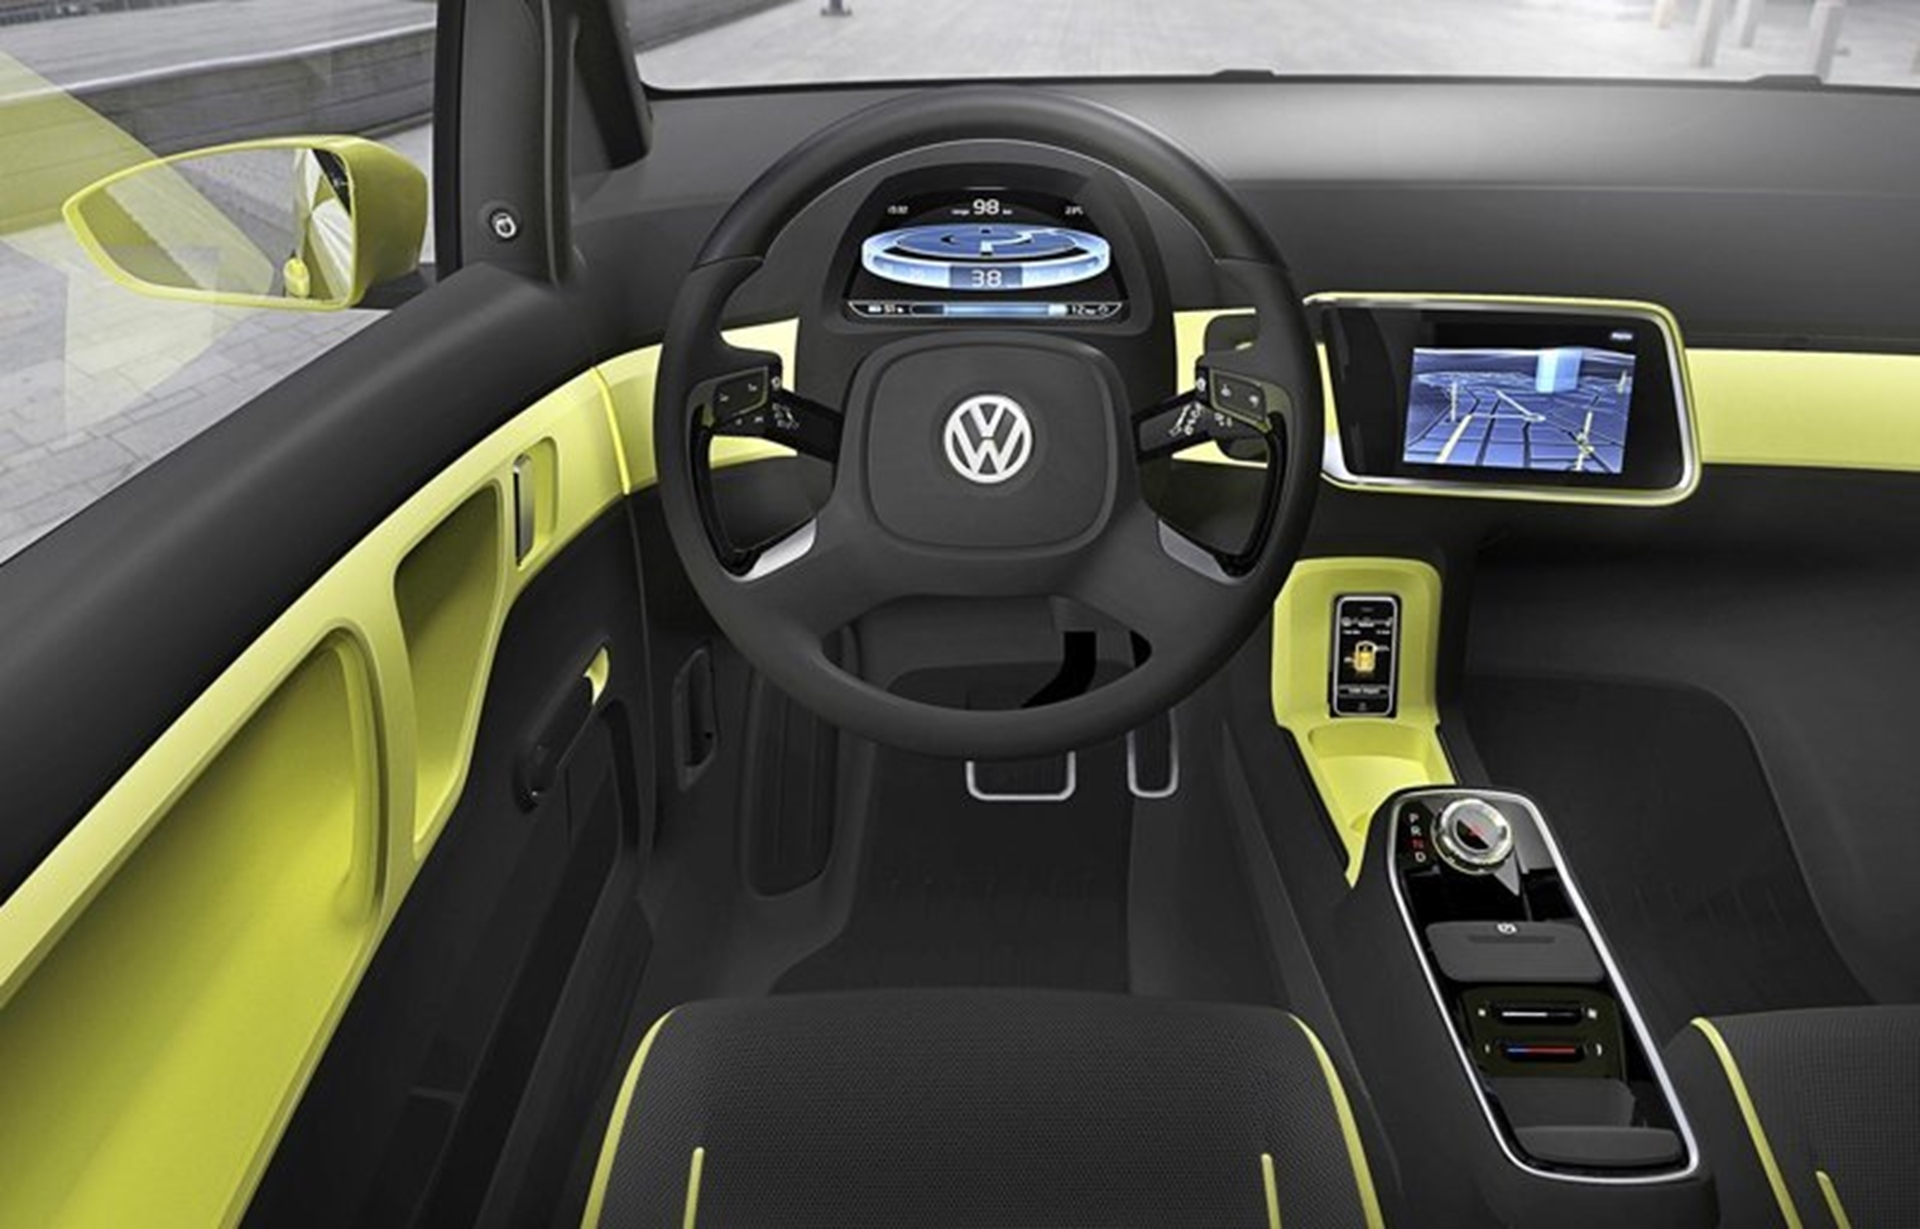 E UP Buggy Volkswagen Concept Car